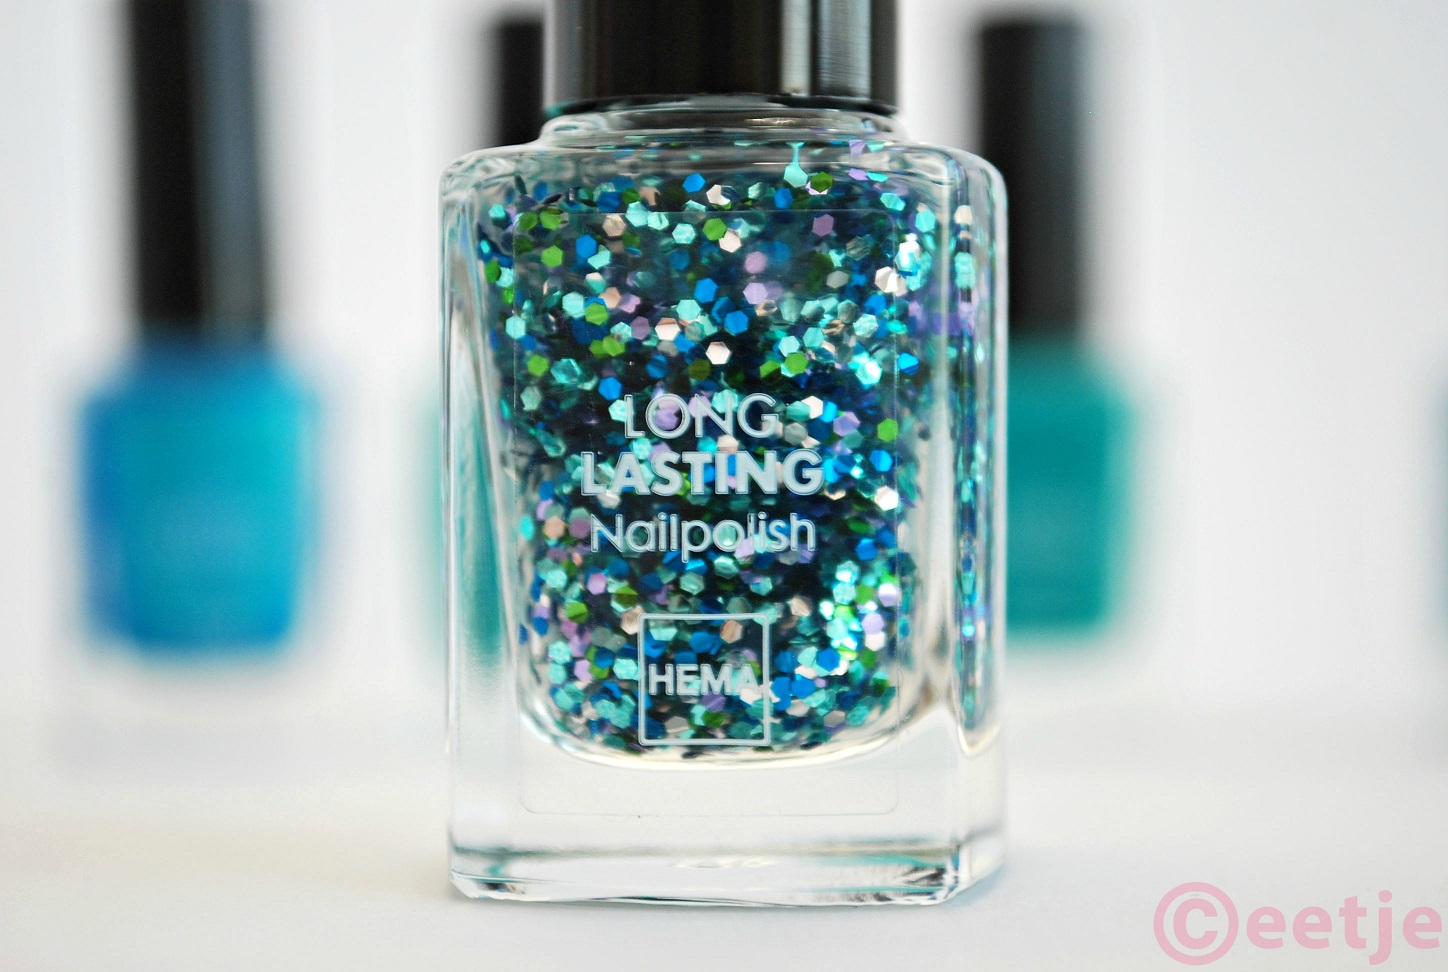 Hema topcoat Ocean glitter review swatch